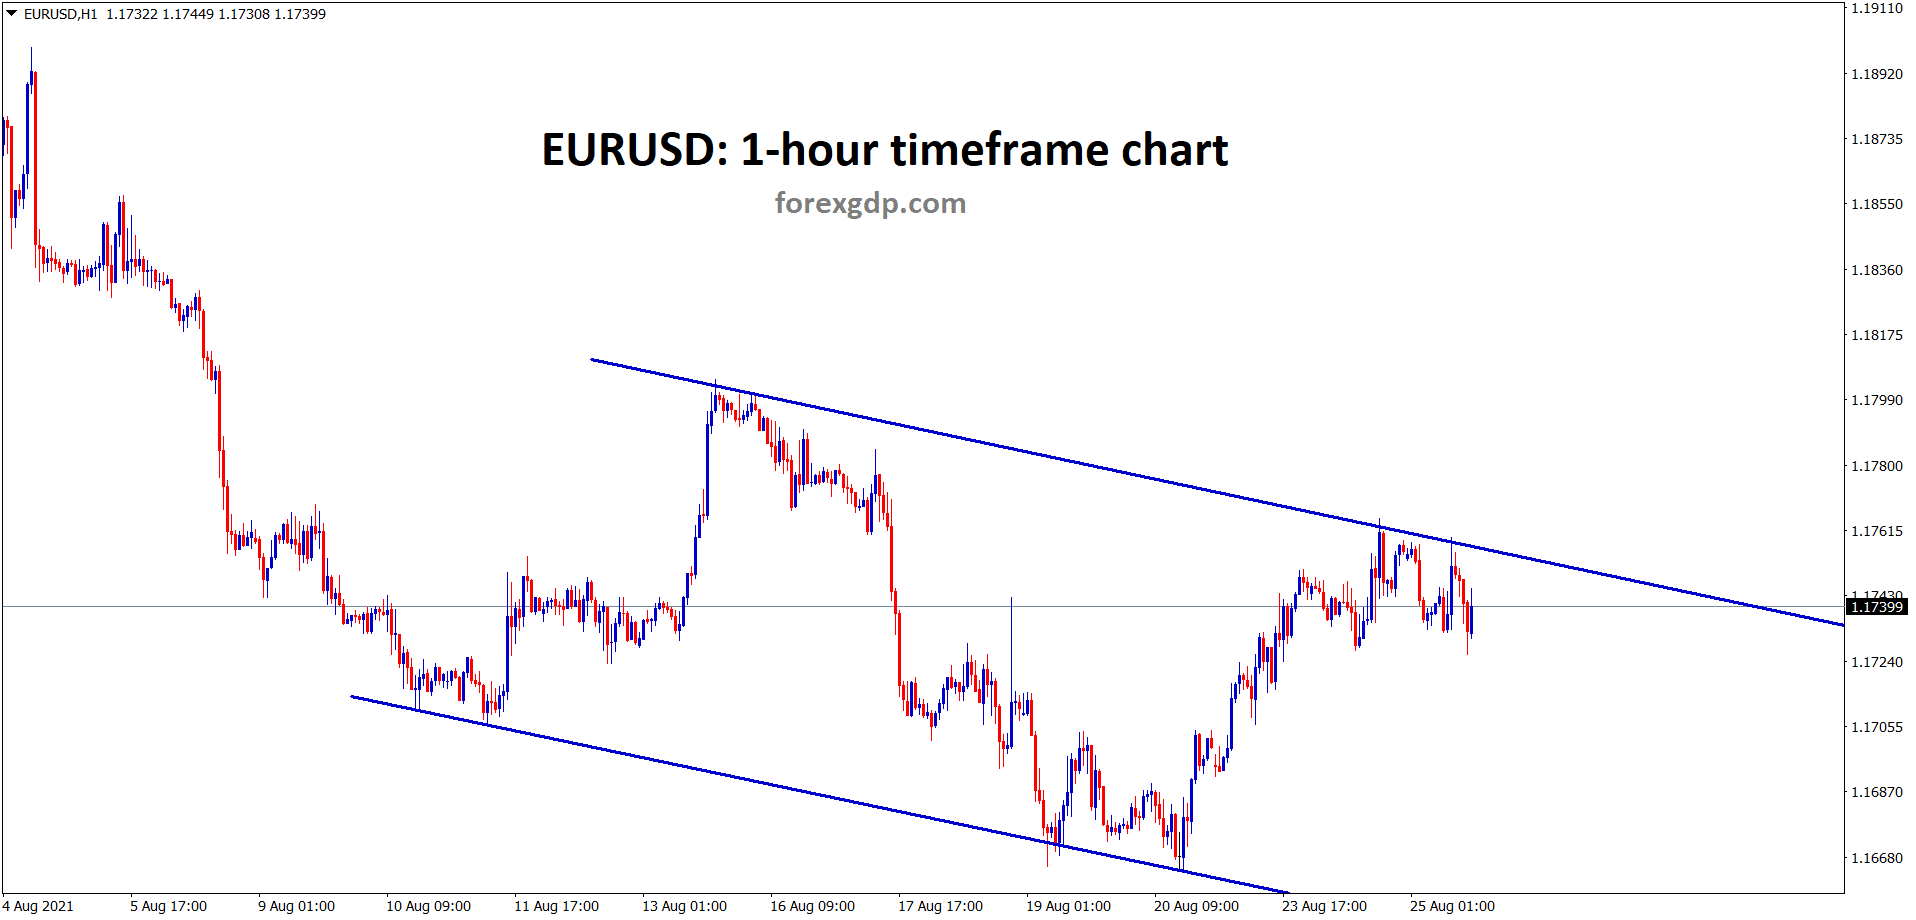 EURUSD is consolidating at the lower high area of the minor descending channel